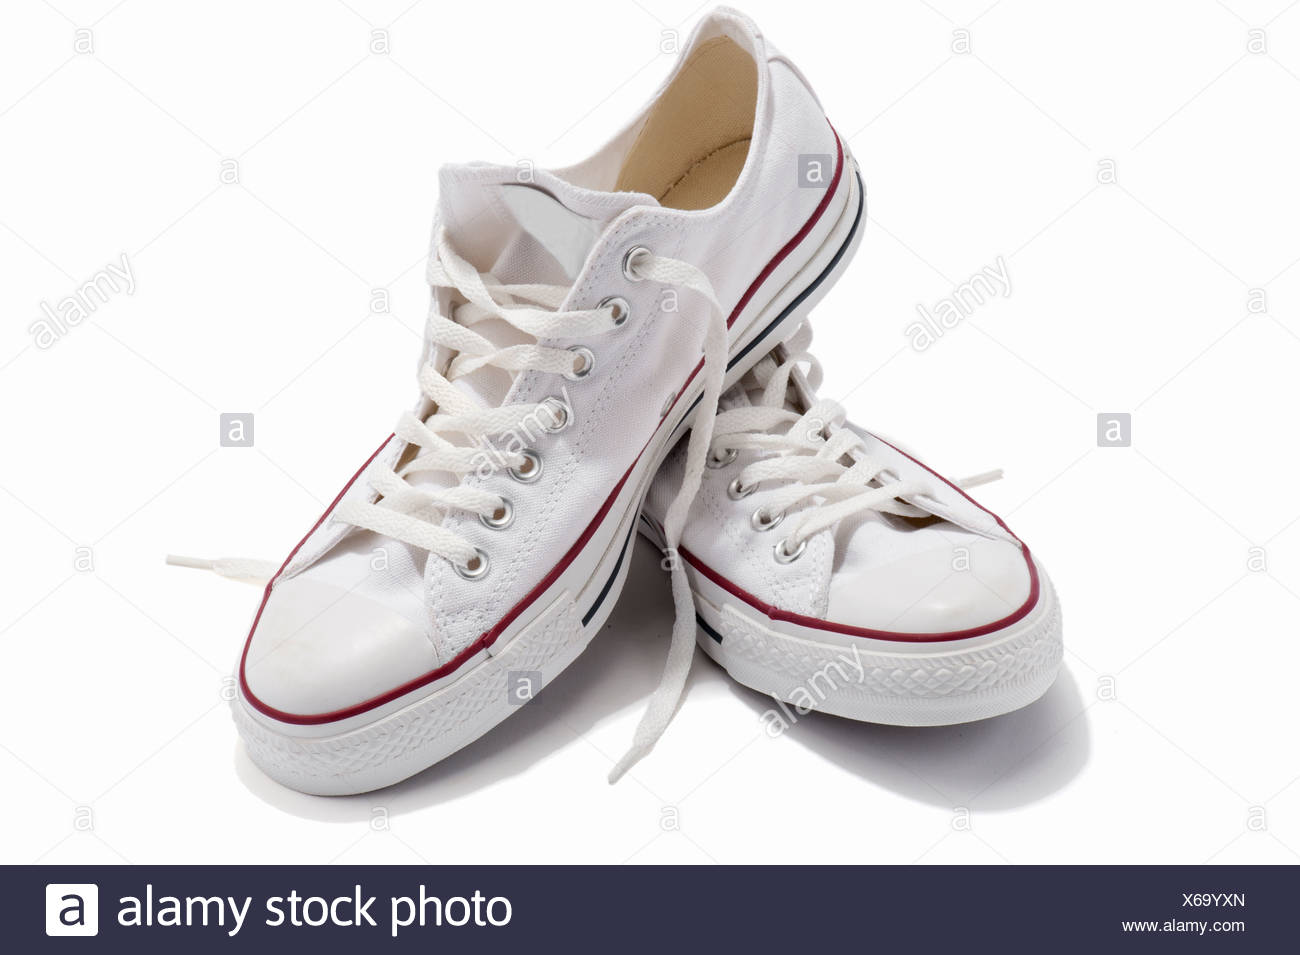 A pair of white lace up plimsolls - Stock Image